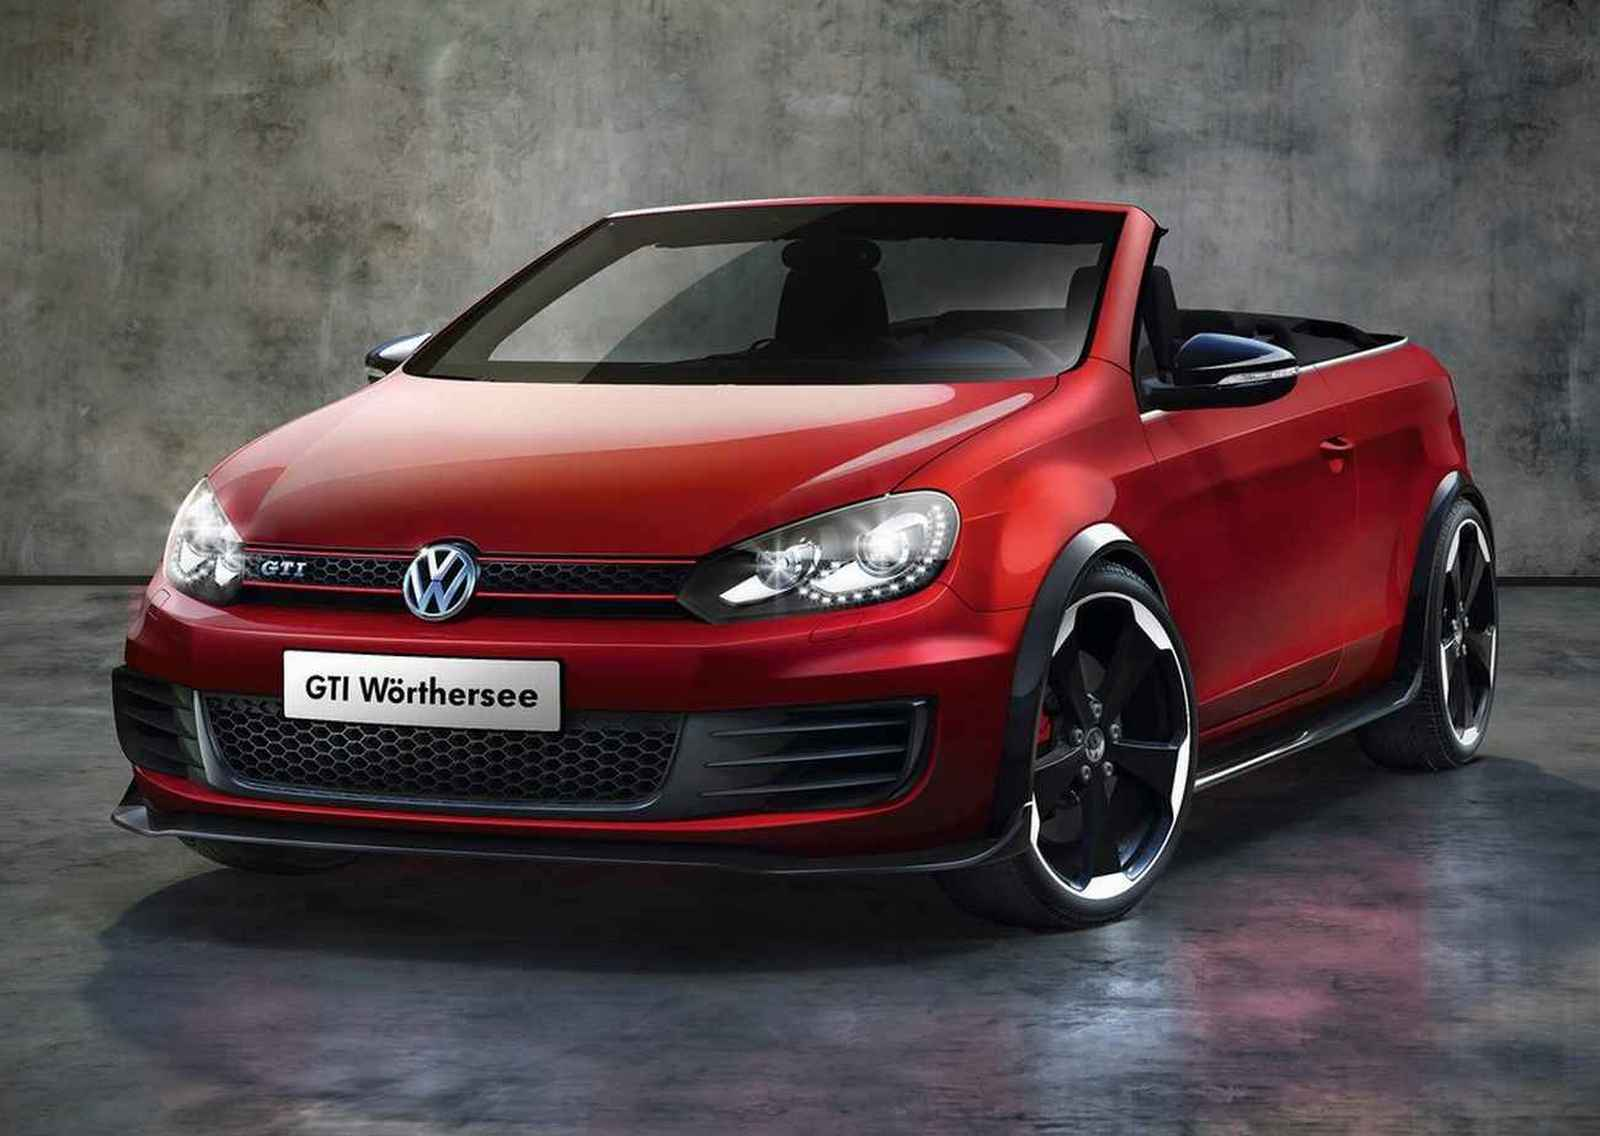 vw golf gti cabriolet concept car review 2011 and pictures new car review. Black Bedroom Furniture Sets. Home Design Ideas